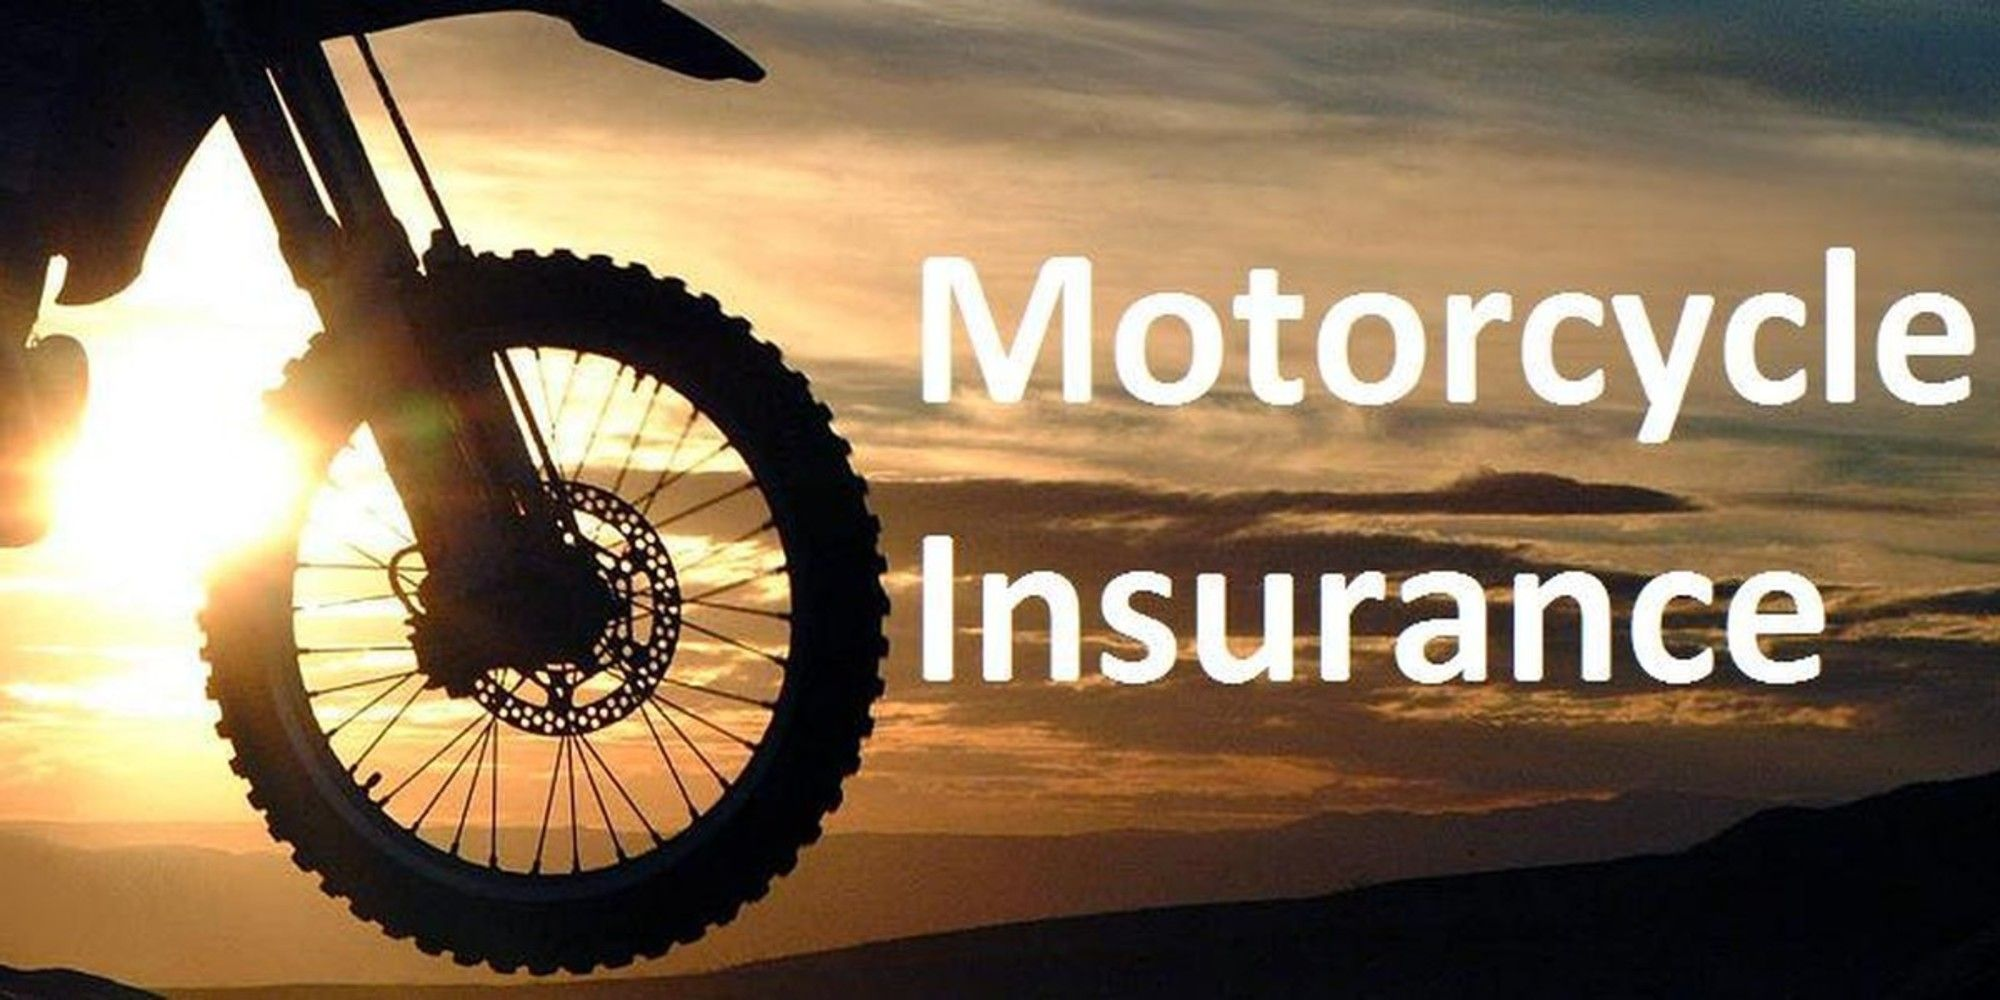 Motorcycle Insurance Quotes Extraordinary Do You Need Motorcycle Insurance In Colorado  Colorado Motorcycle